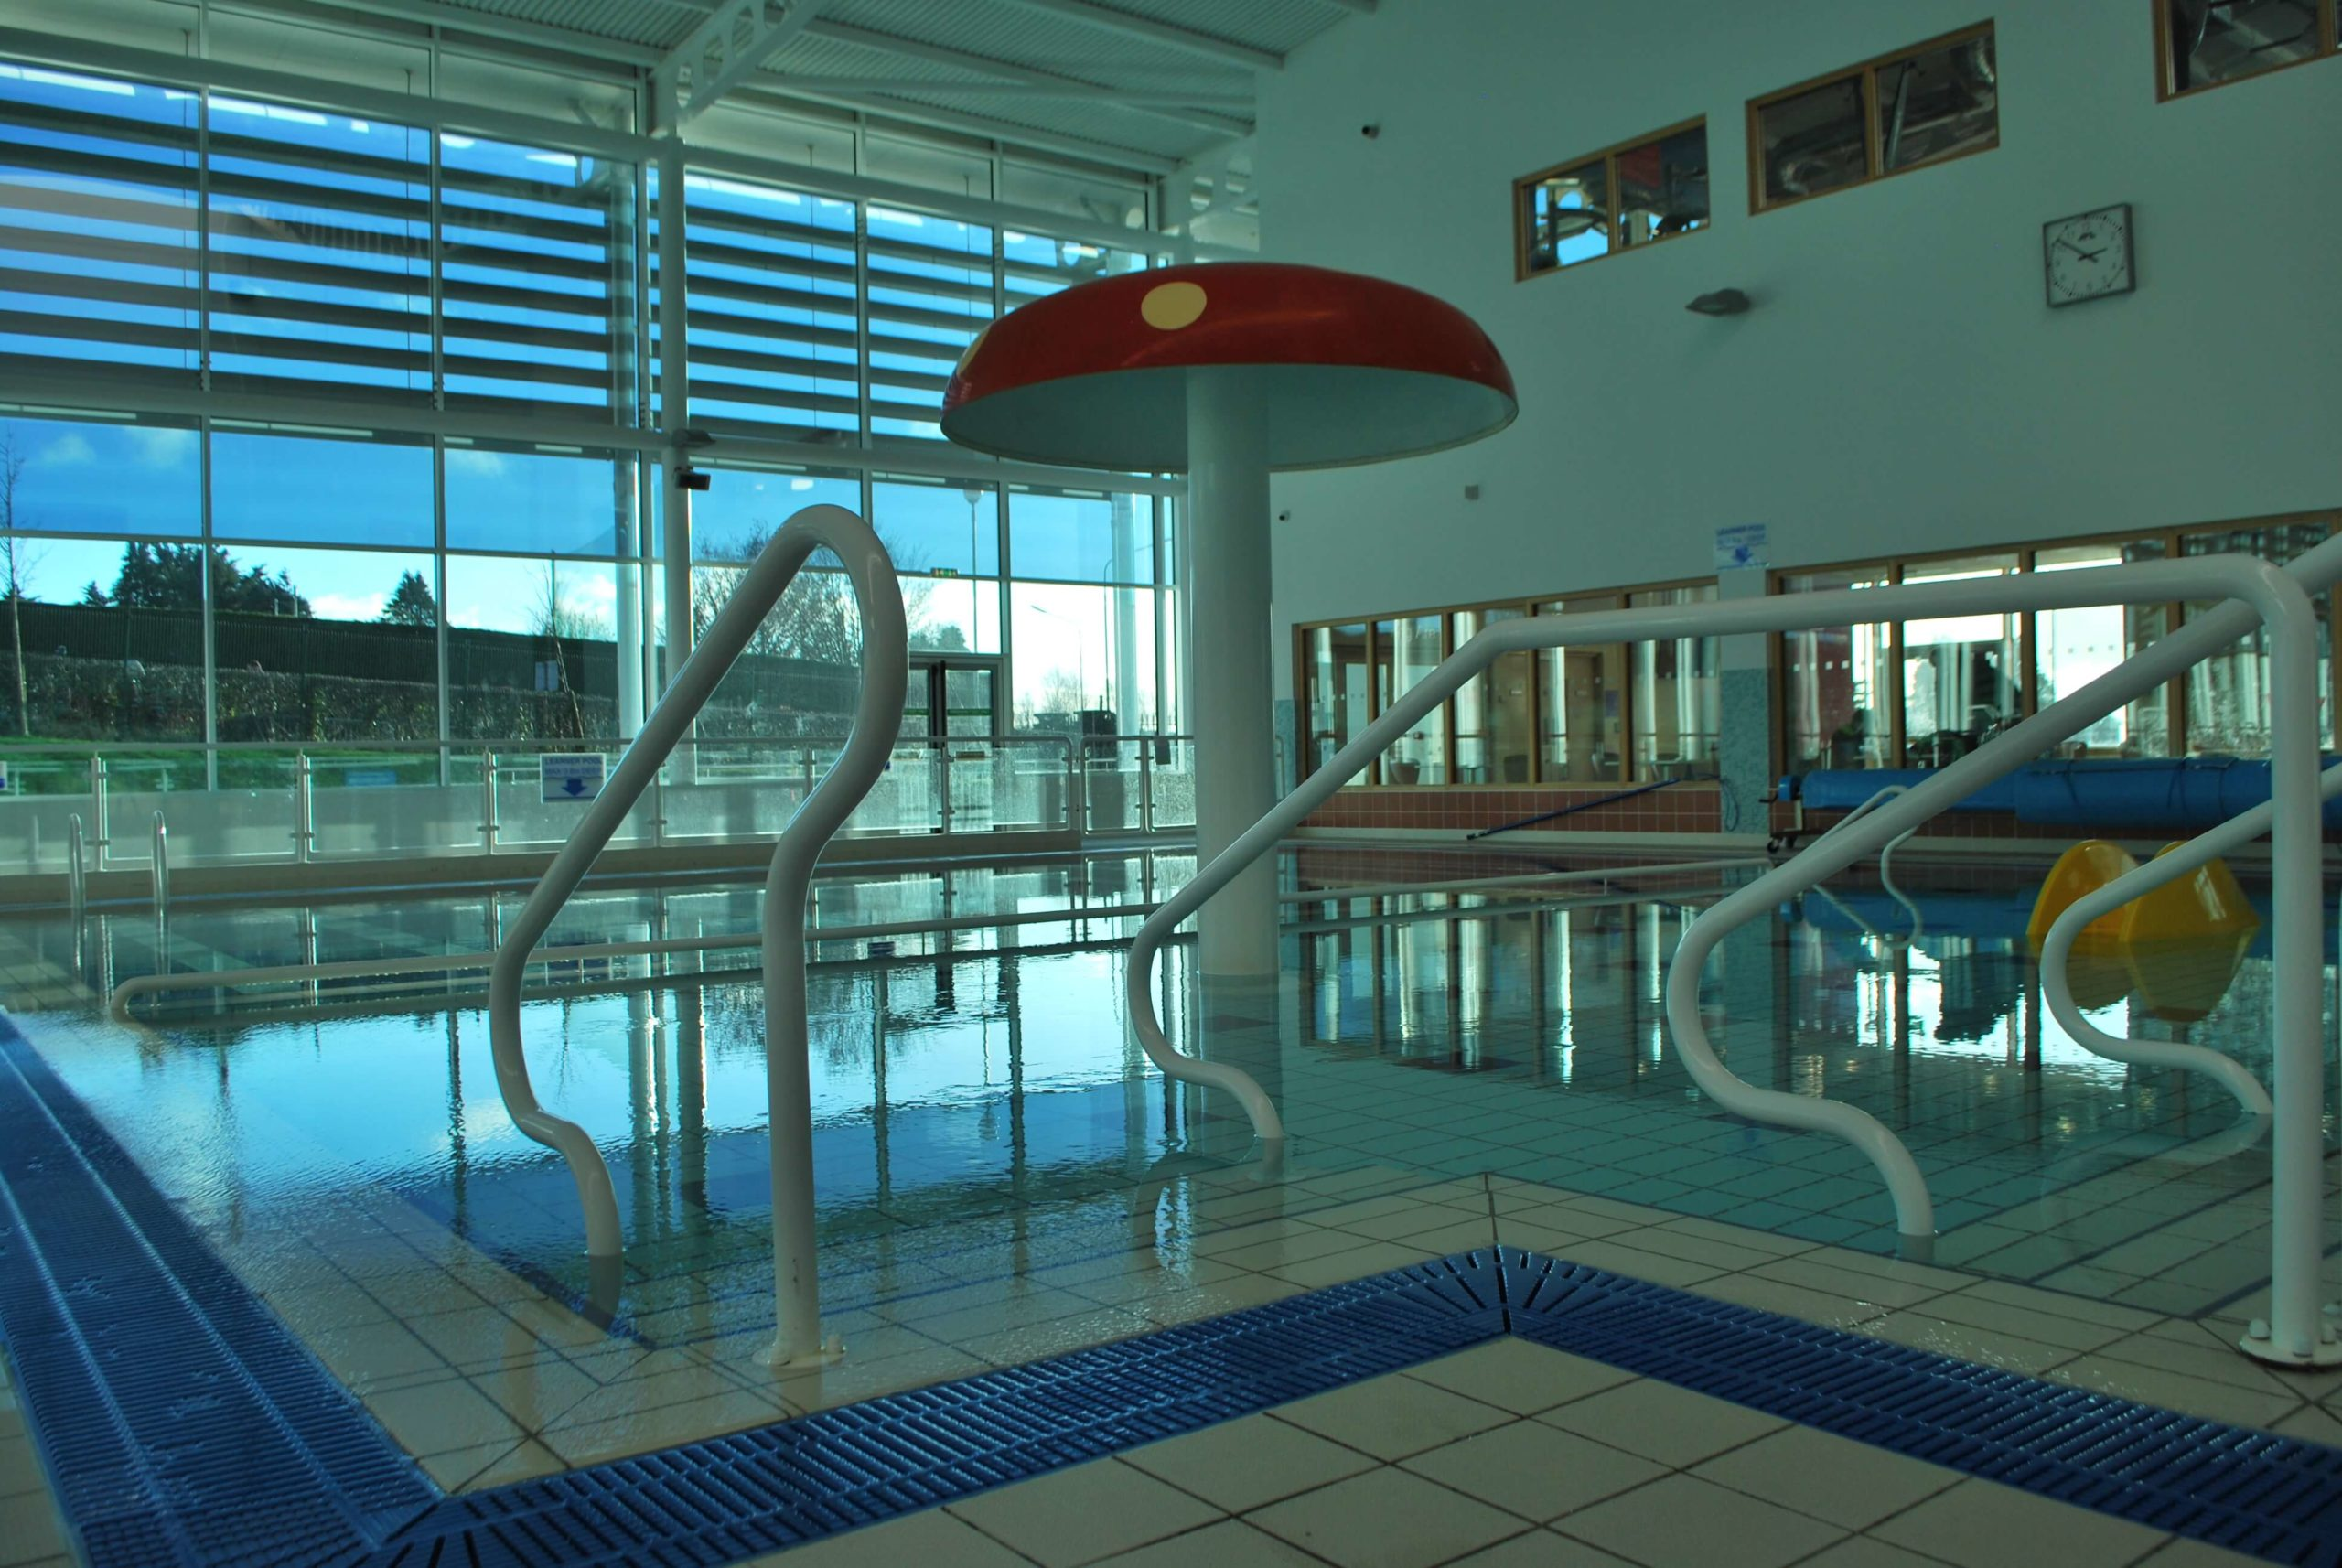 SWIMMING LESSONS & EVENTS